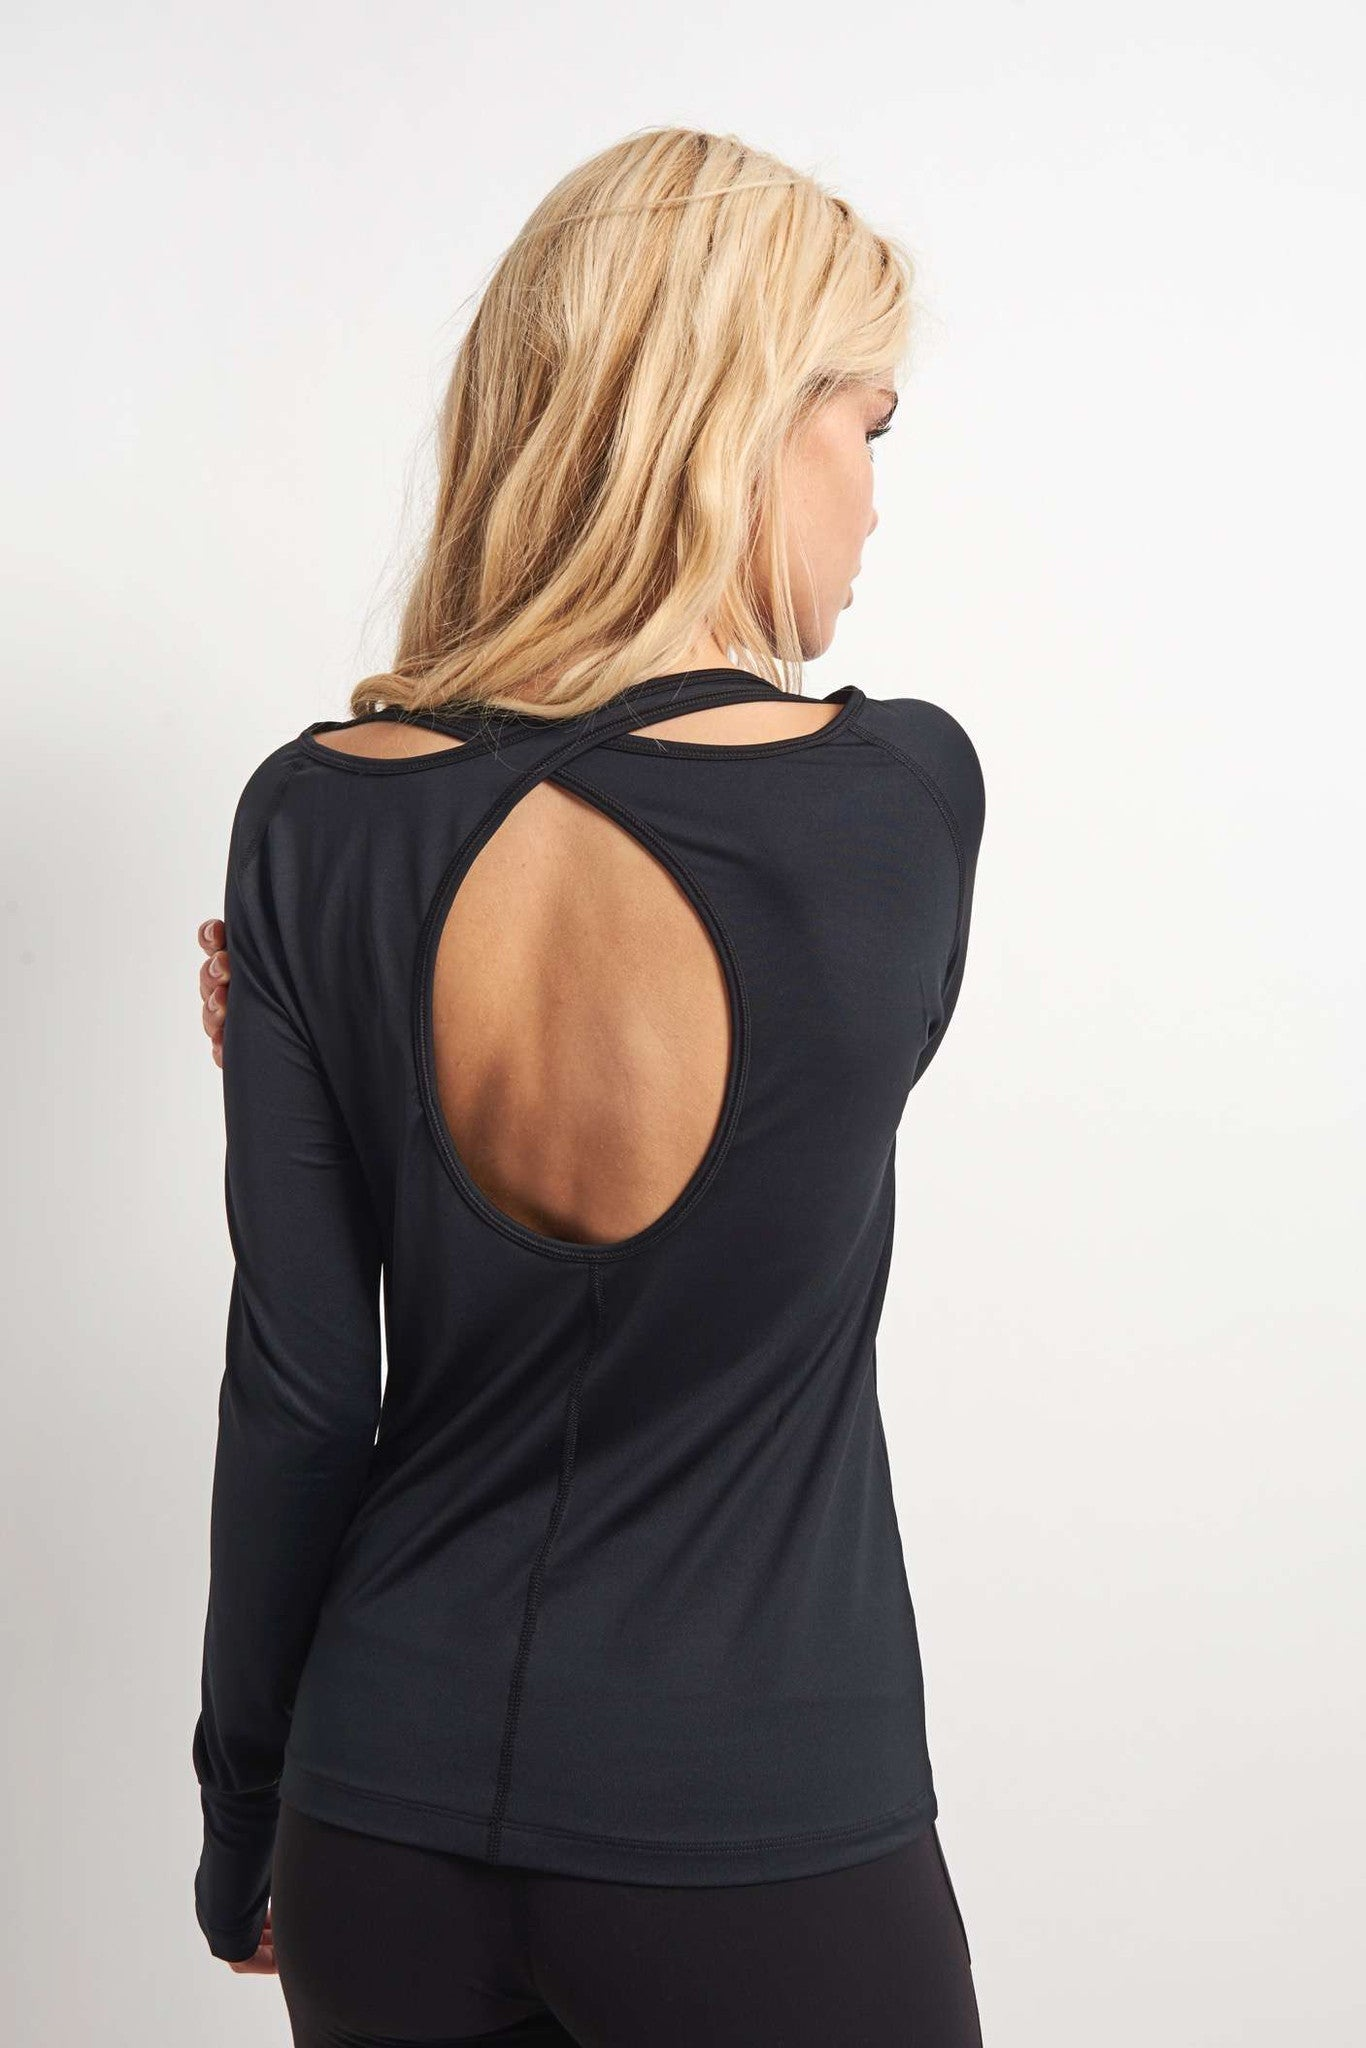 Under Armour Swing Keyhole Long Sleeve Top Black image 2 - The Sports Edit